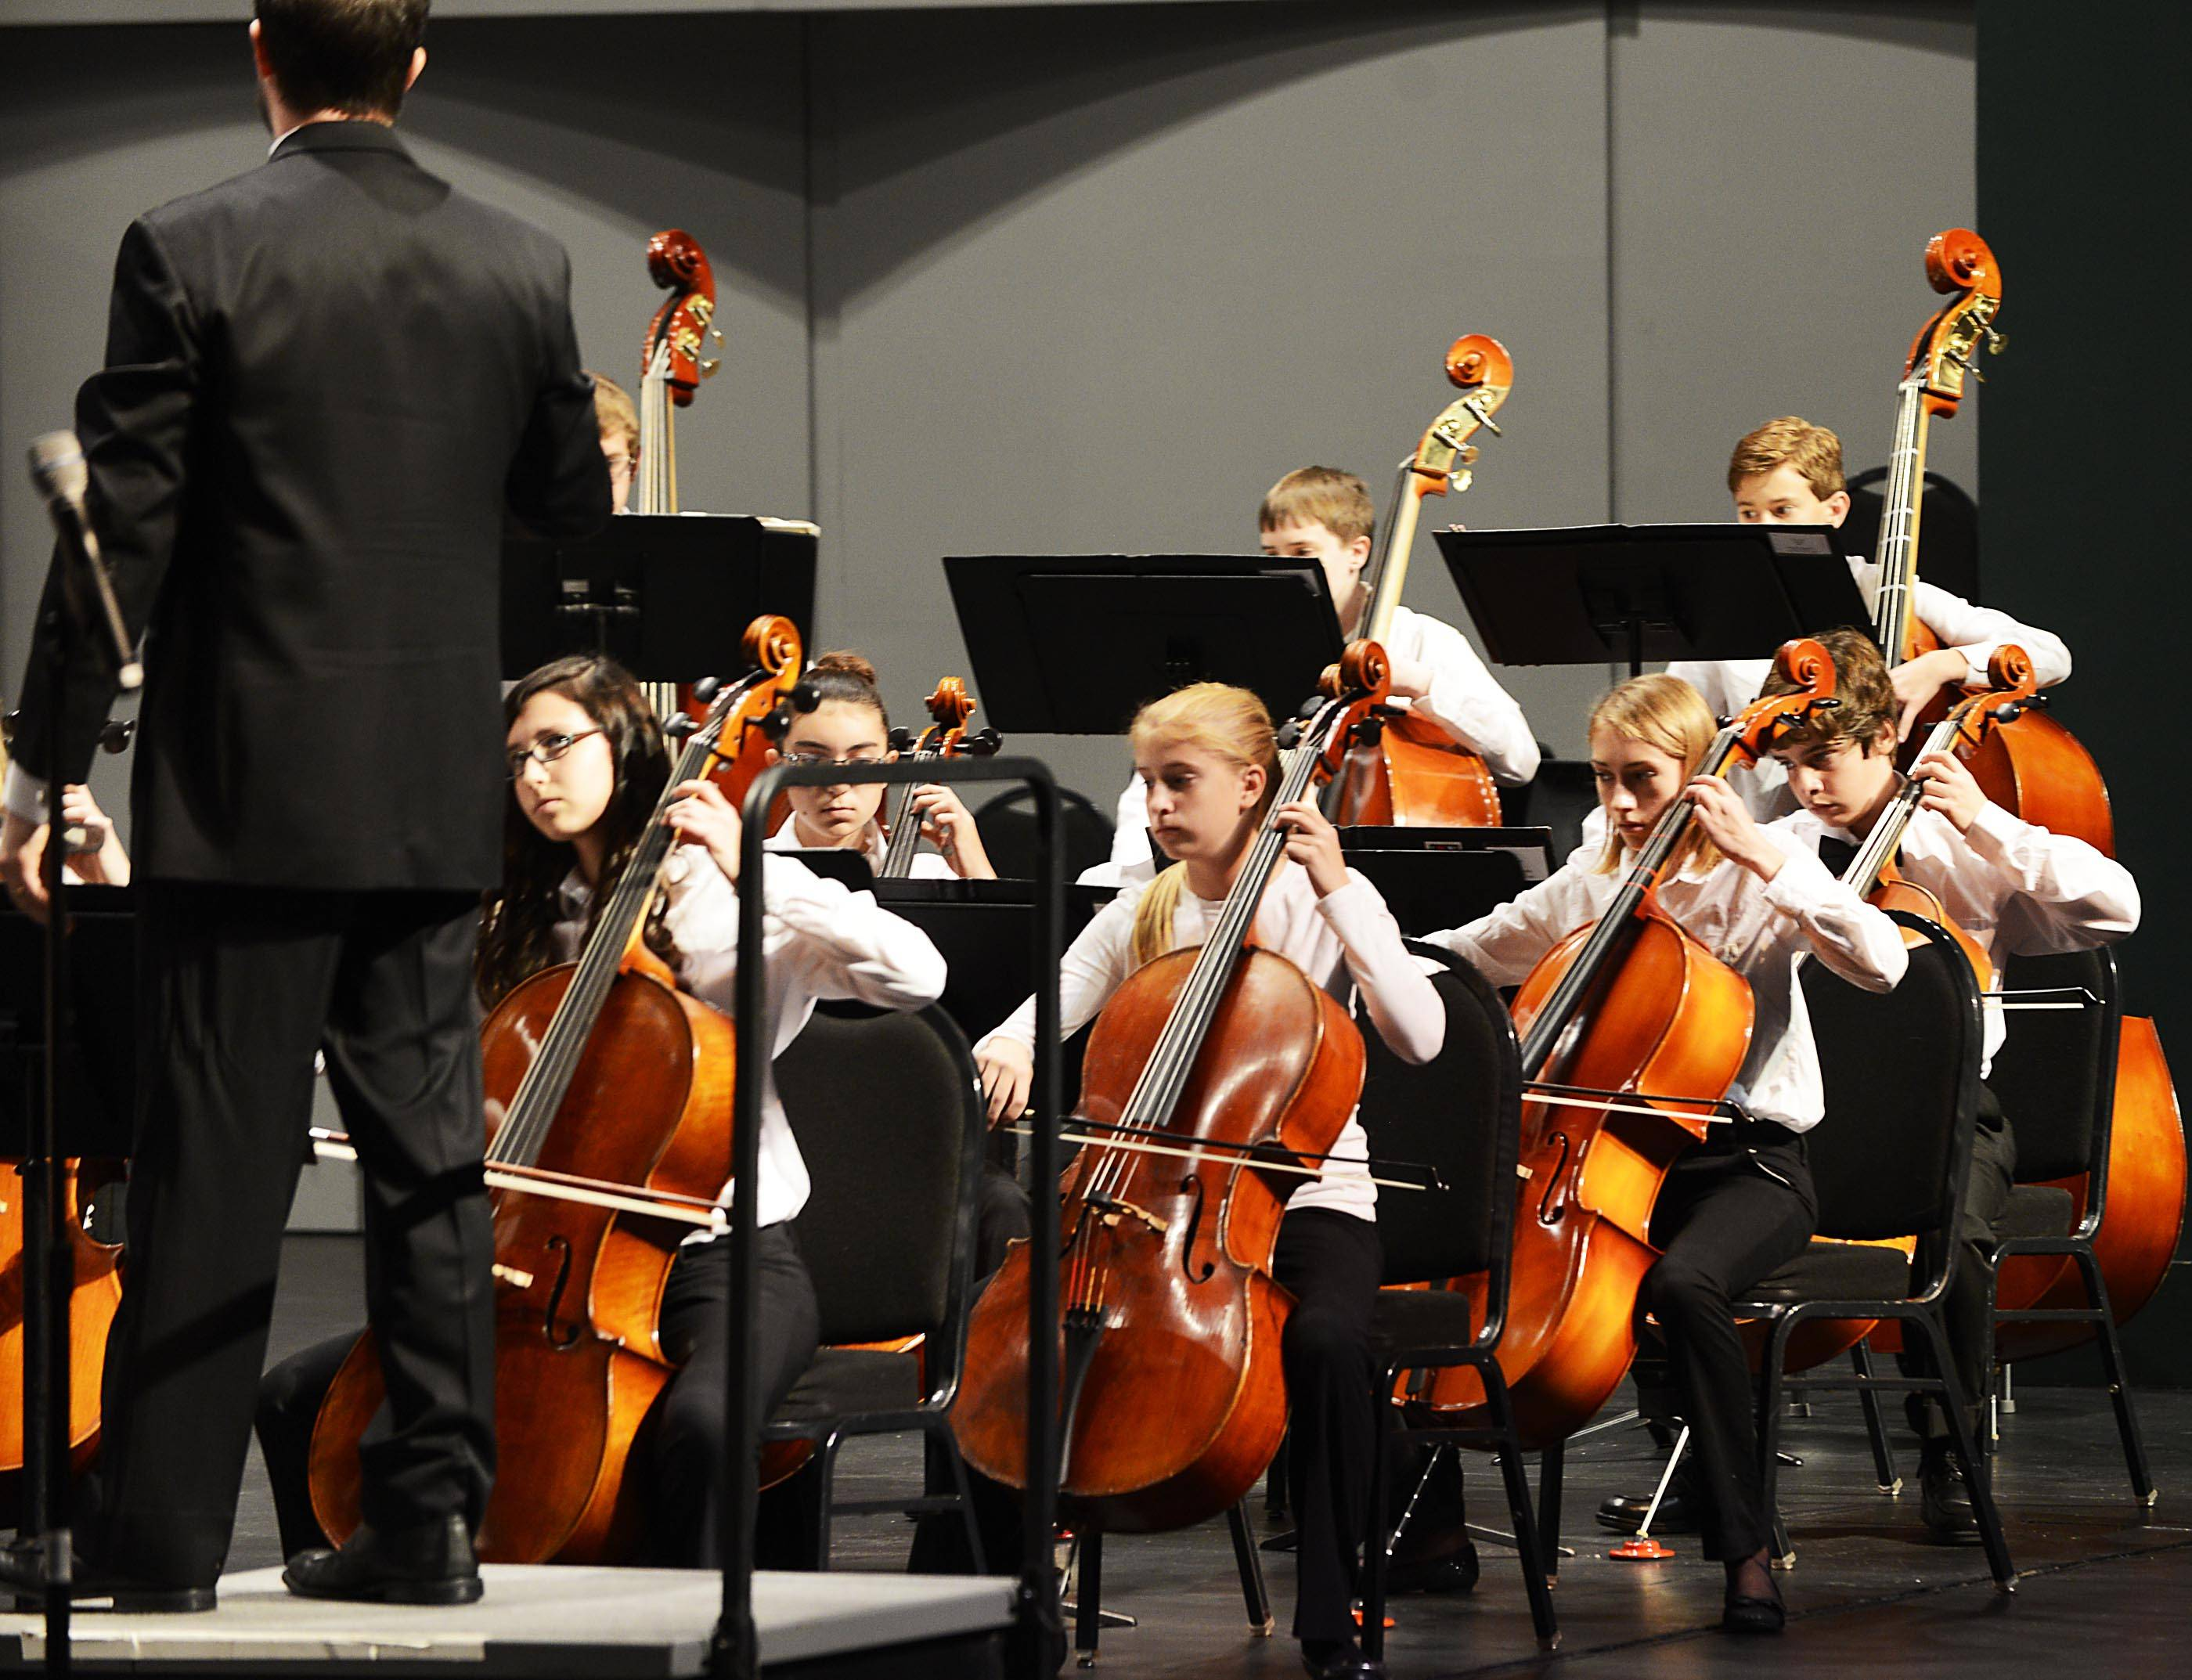 On Sunday, March 2, the Elgin Youth Symphony Orchestra will host its annual open house for prospective musicians.